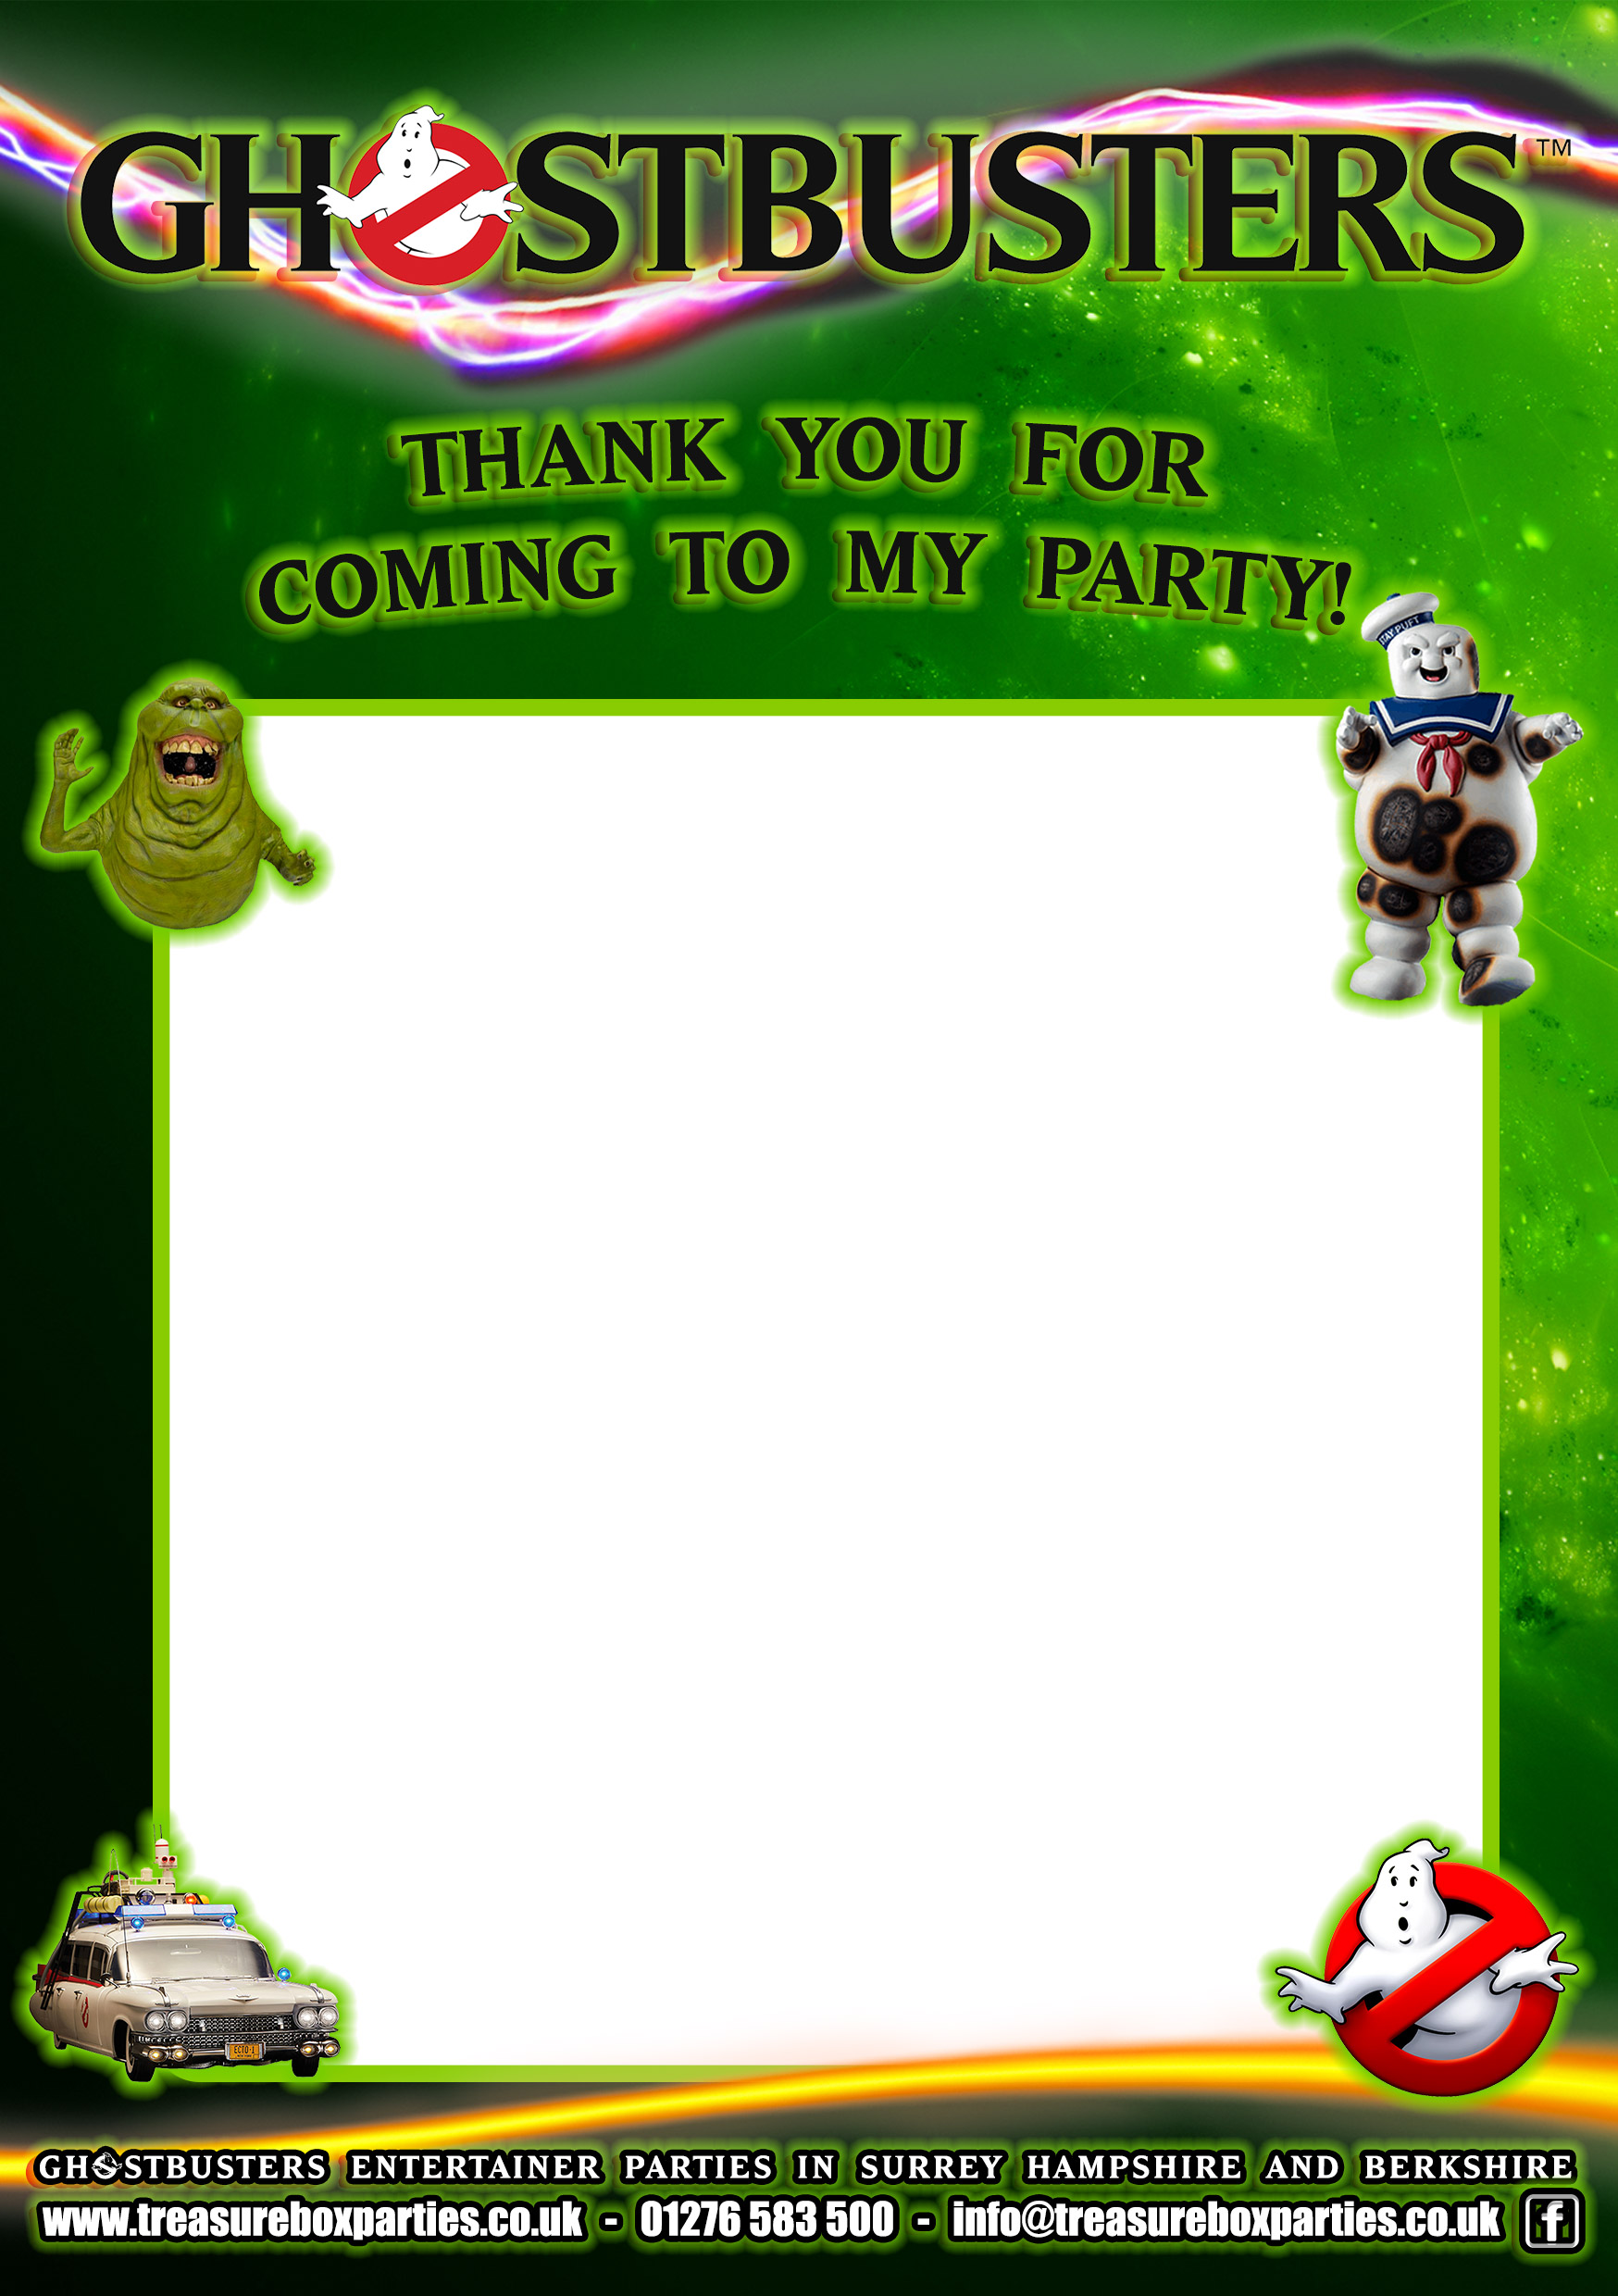 Ghostbusters Free Party Invitations And Activities Downloads Childrens Entertainer Parties Surrey Berkshire Hampshire Treasure Box Parties Supplies Kids Party Games Ideas